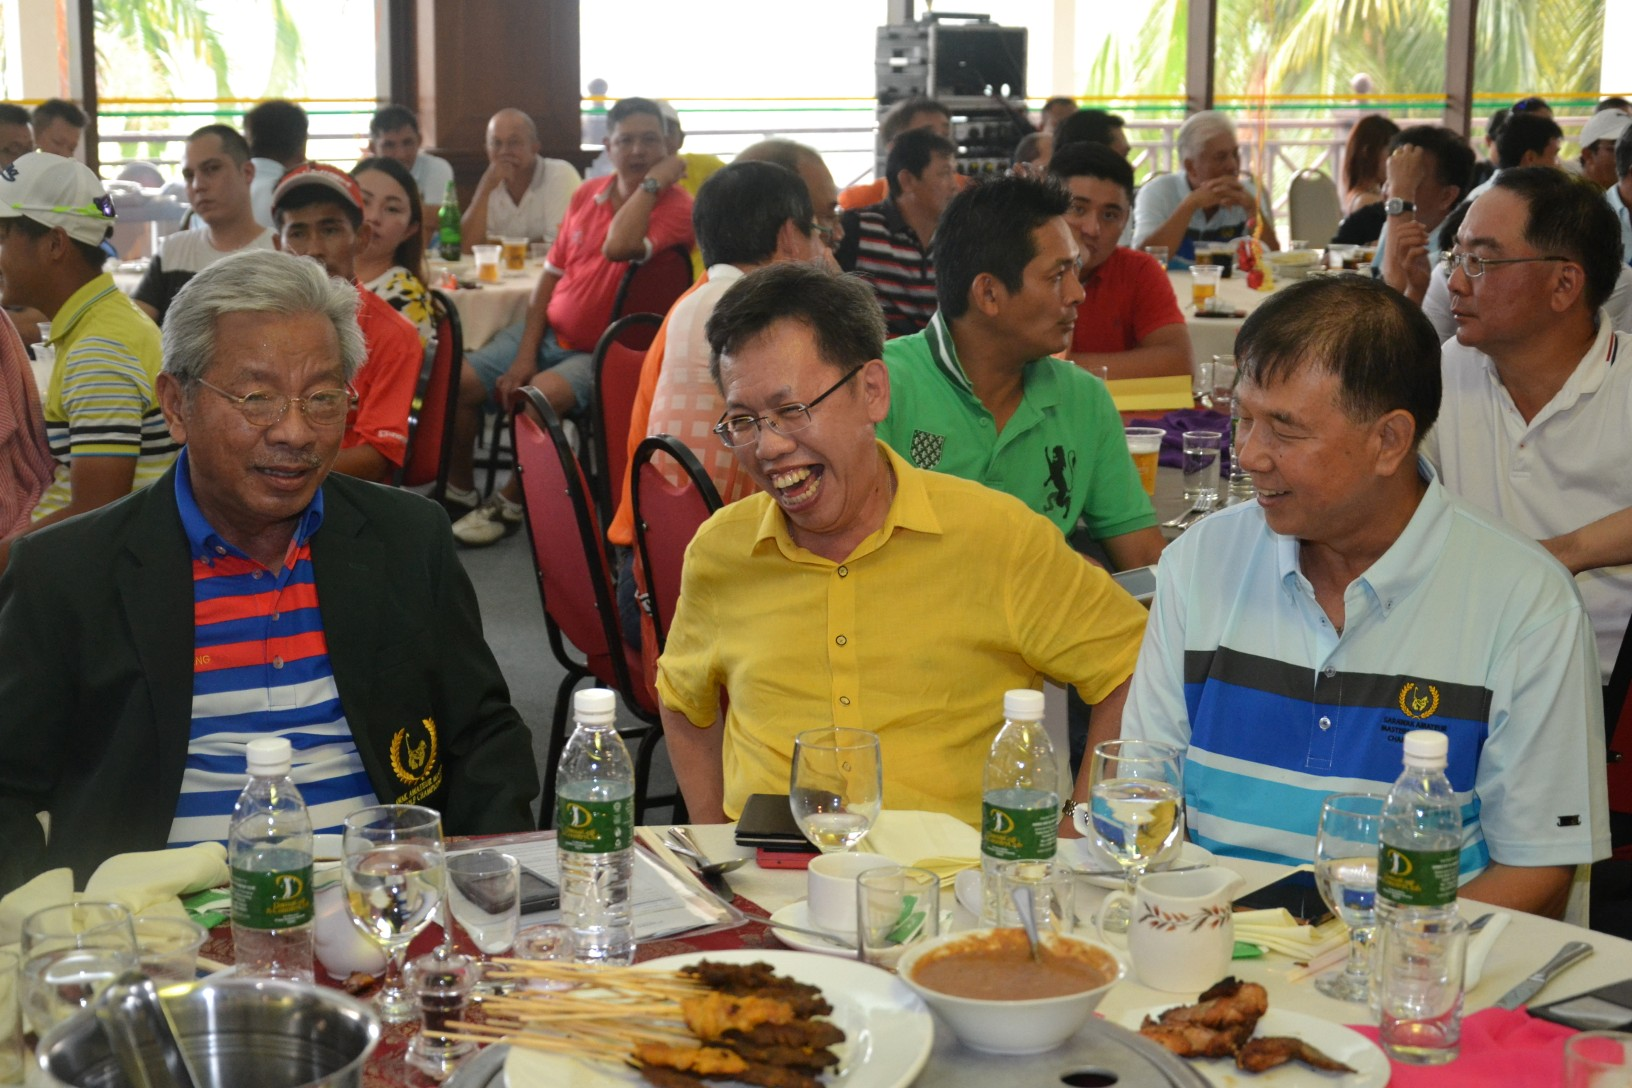 Masing, Dr Sim and Dato' Sebastian Ting at the golf game.